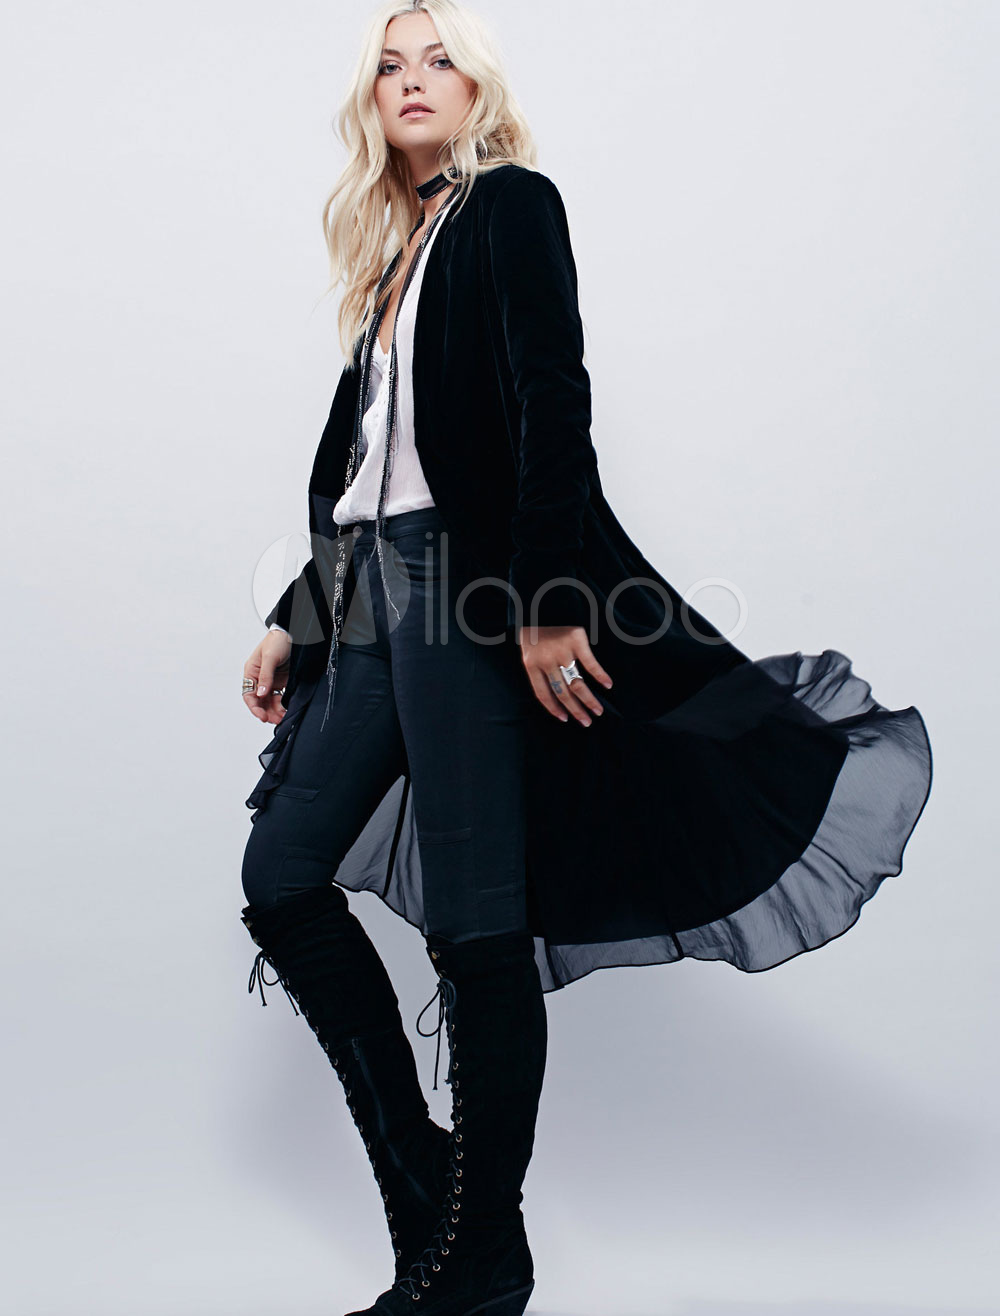 Velvet Black Coat Women's Ruffle Tiered Long Sleeve Casual Longline Cardigan Coat Cheap clothes, free shipping worldwide